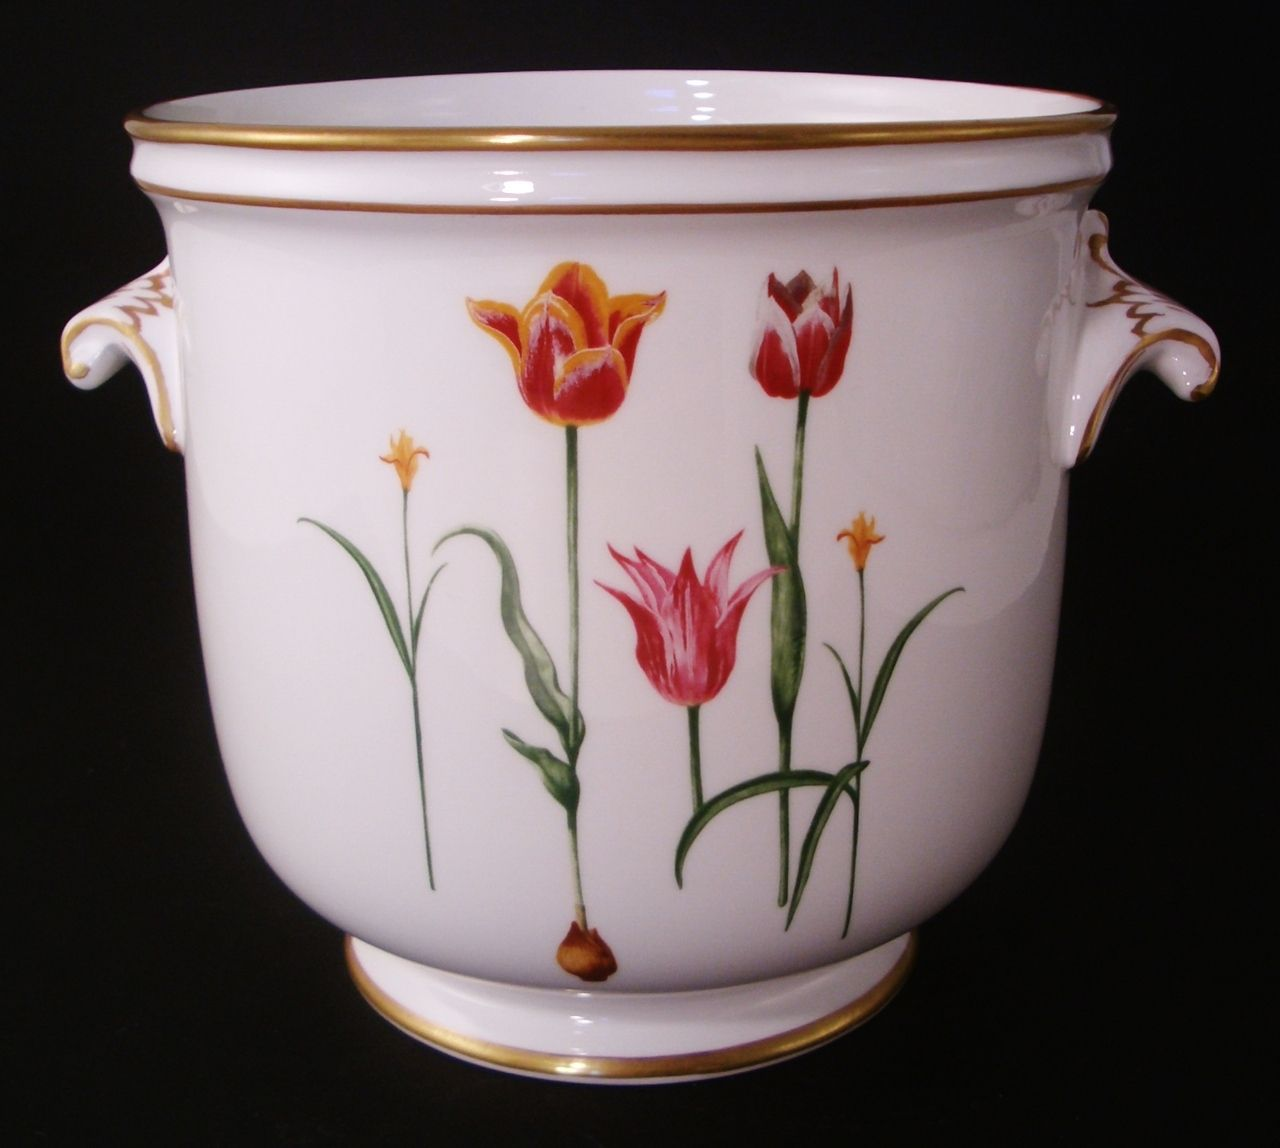 Tulip cachepot. These cachepots come in a wide variety of lovely image designs. They match their dinnerware patterns, too.